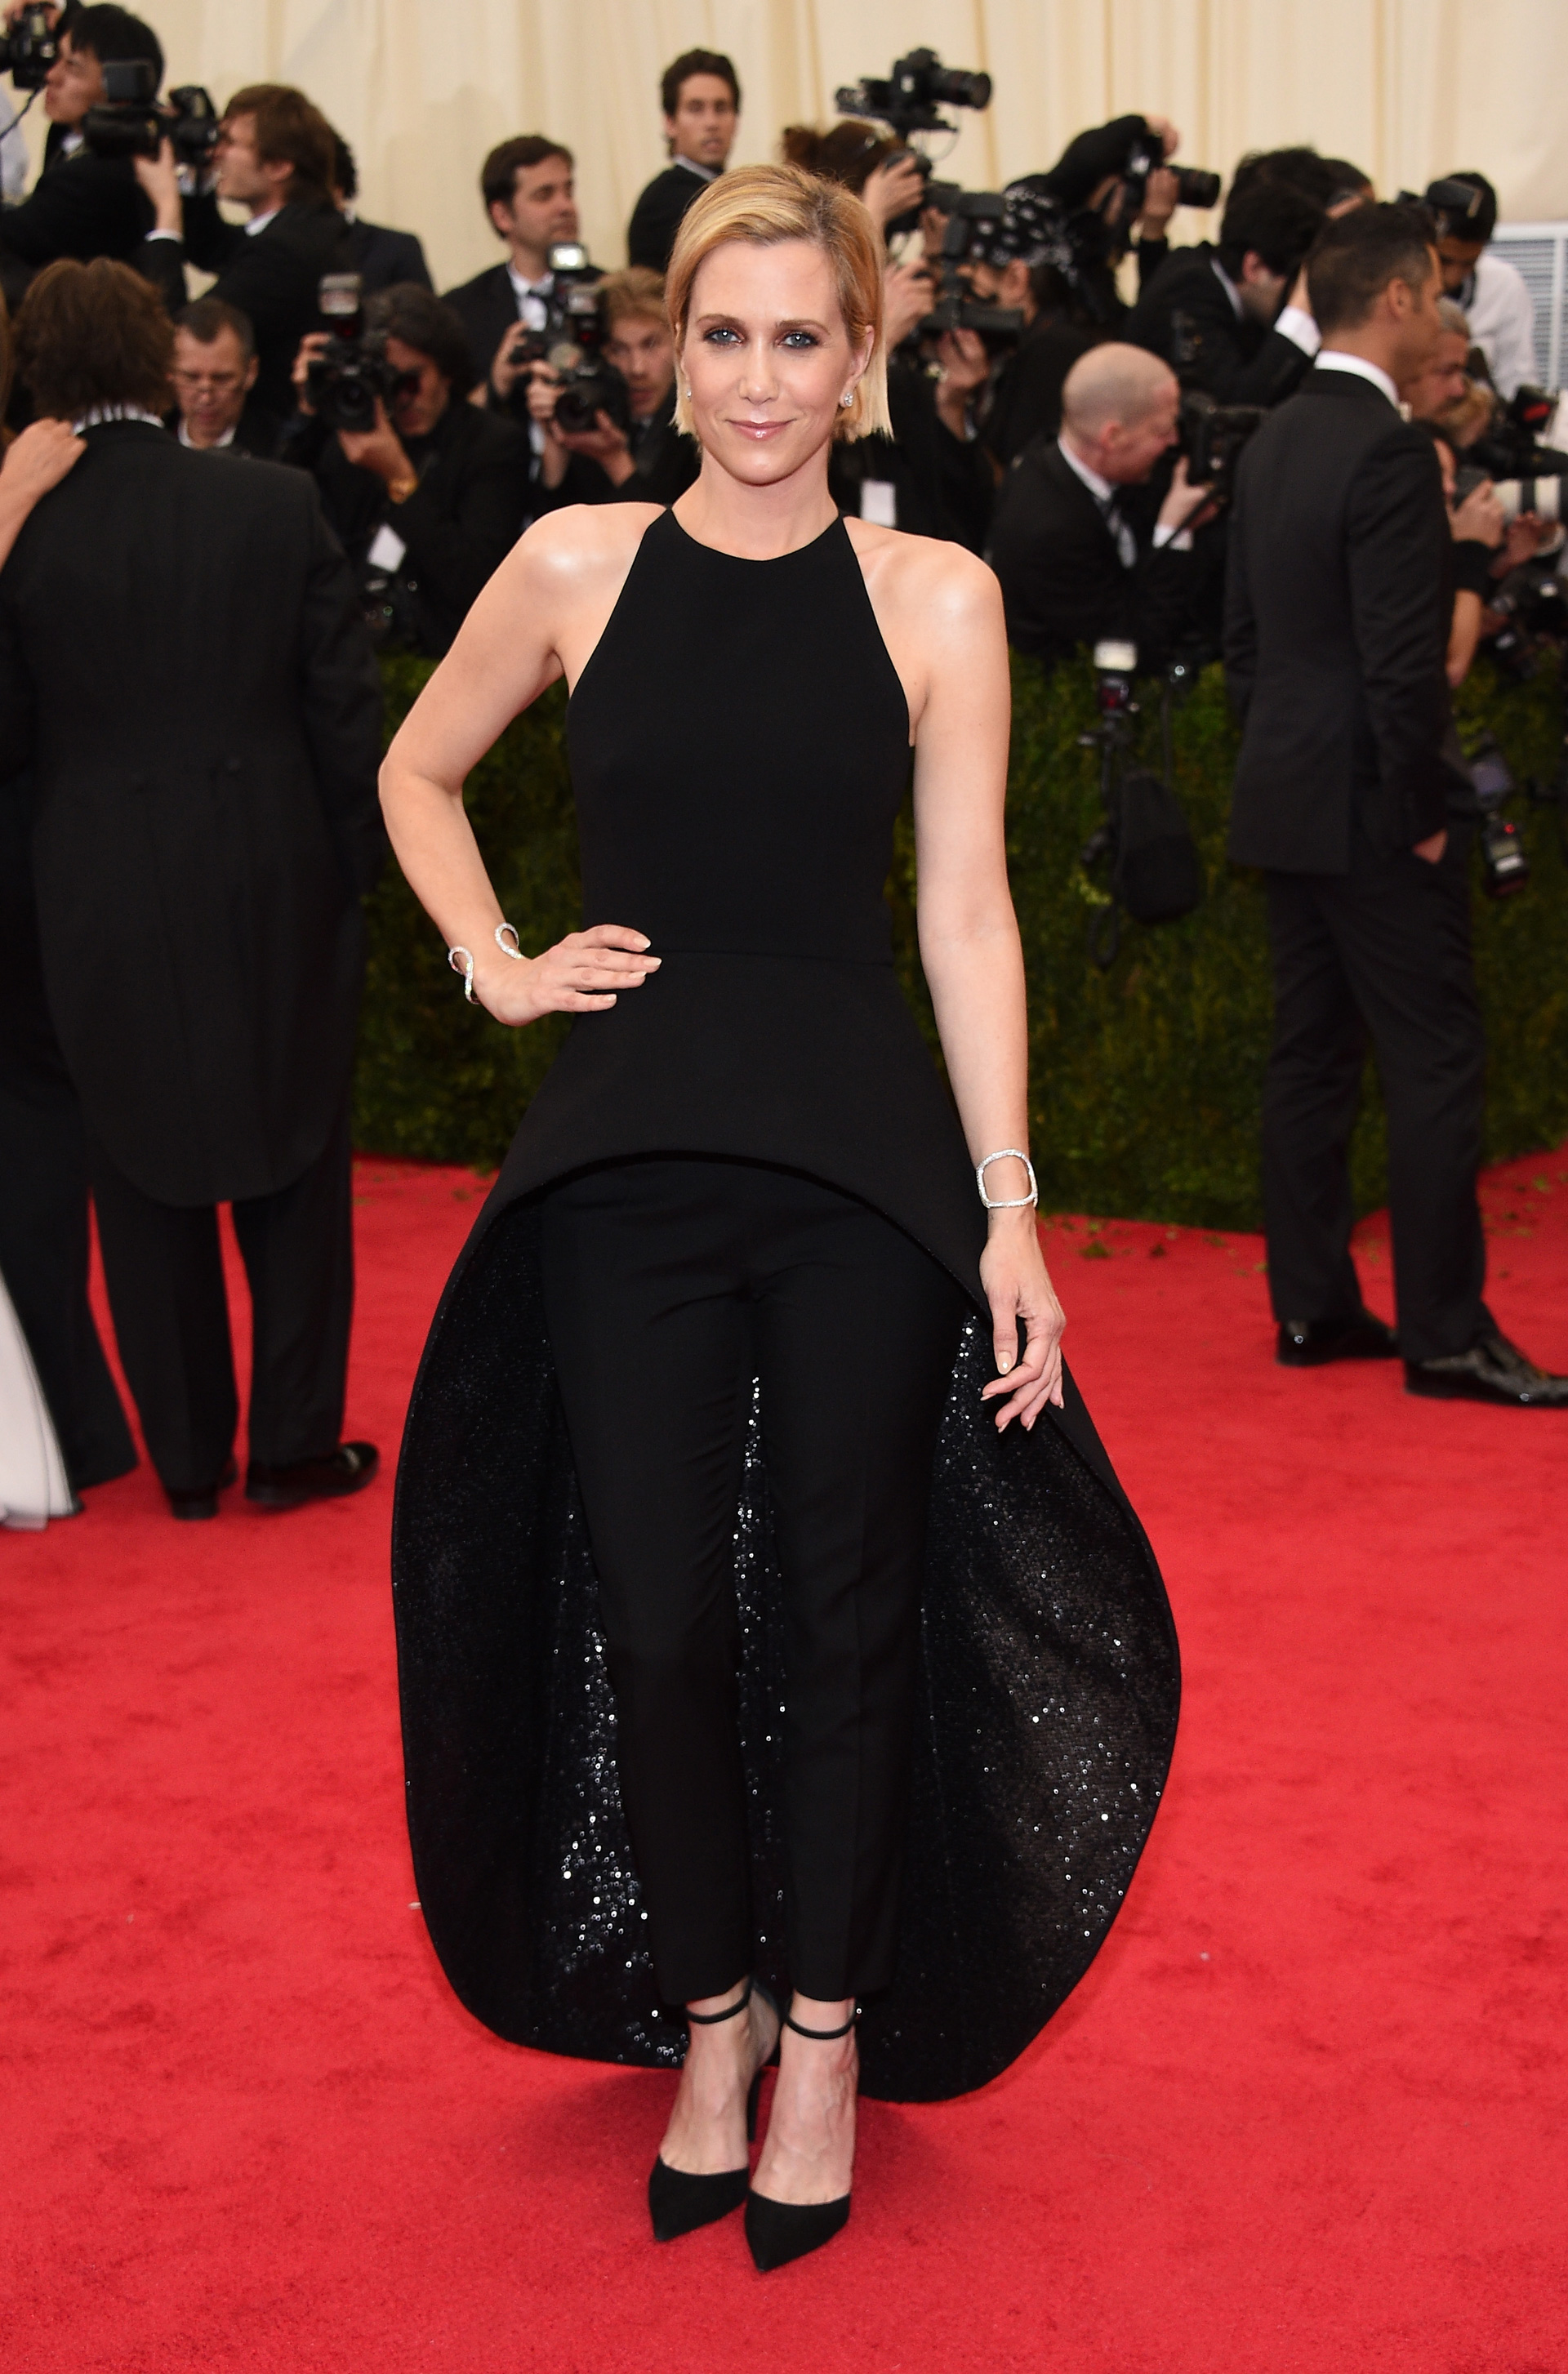 Kristin Wiig at the 2014 Met Gala